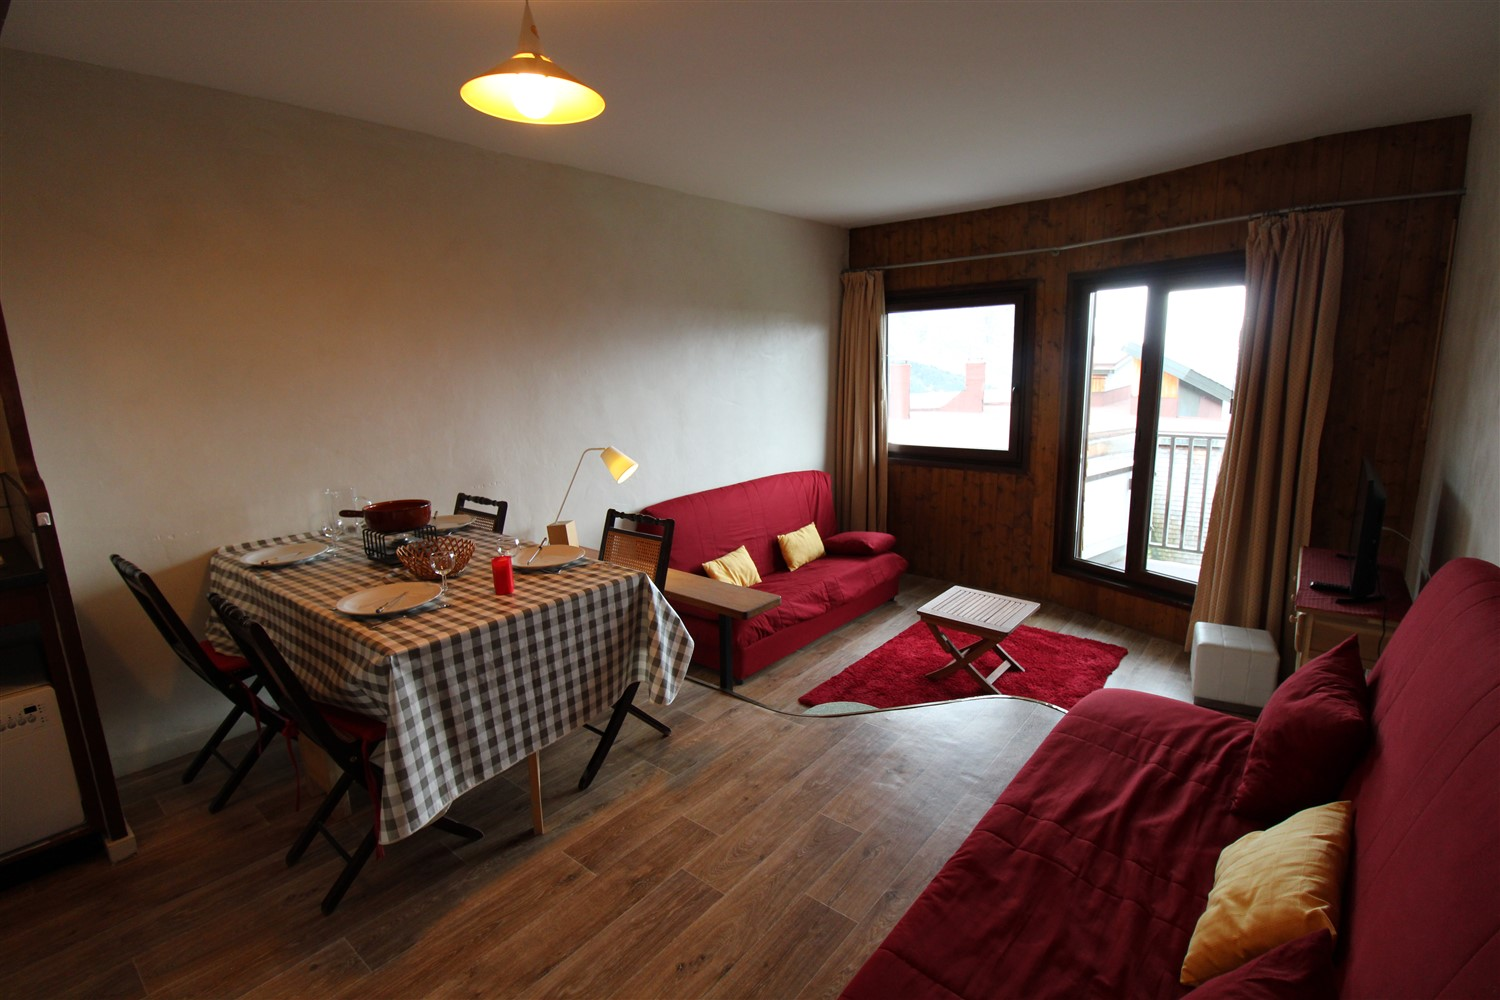 Location Ac1 Thuya Avoriaz